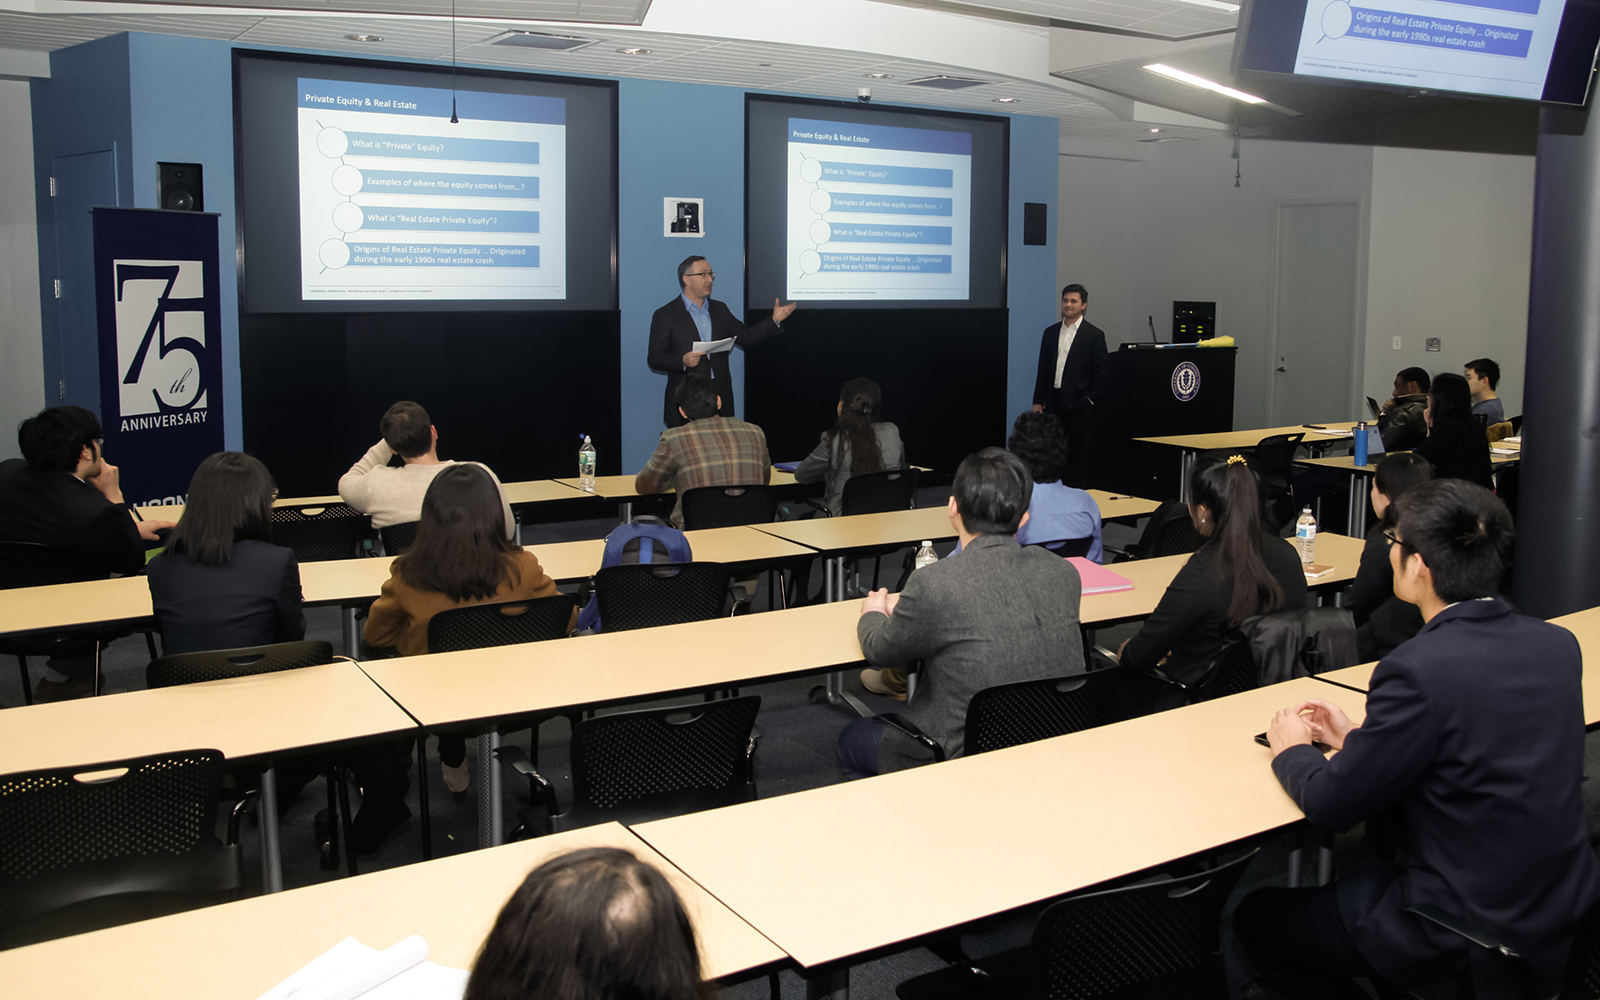 John McCarthy '83, managing director, Global Capital Raising, and Chintan Bhat '07 (ENG), vice president of portfolio management, shared their career experiences at Starwood Capital Group to the Finance Club at the Stamford campus on February 25th. (Ian Hollis/UConn photo)